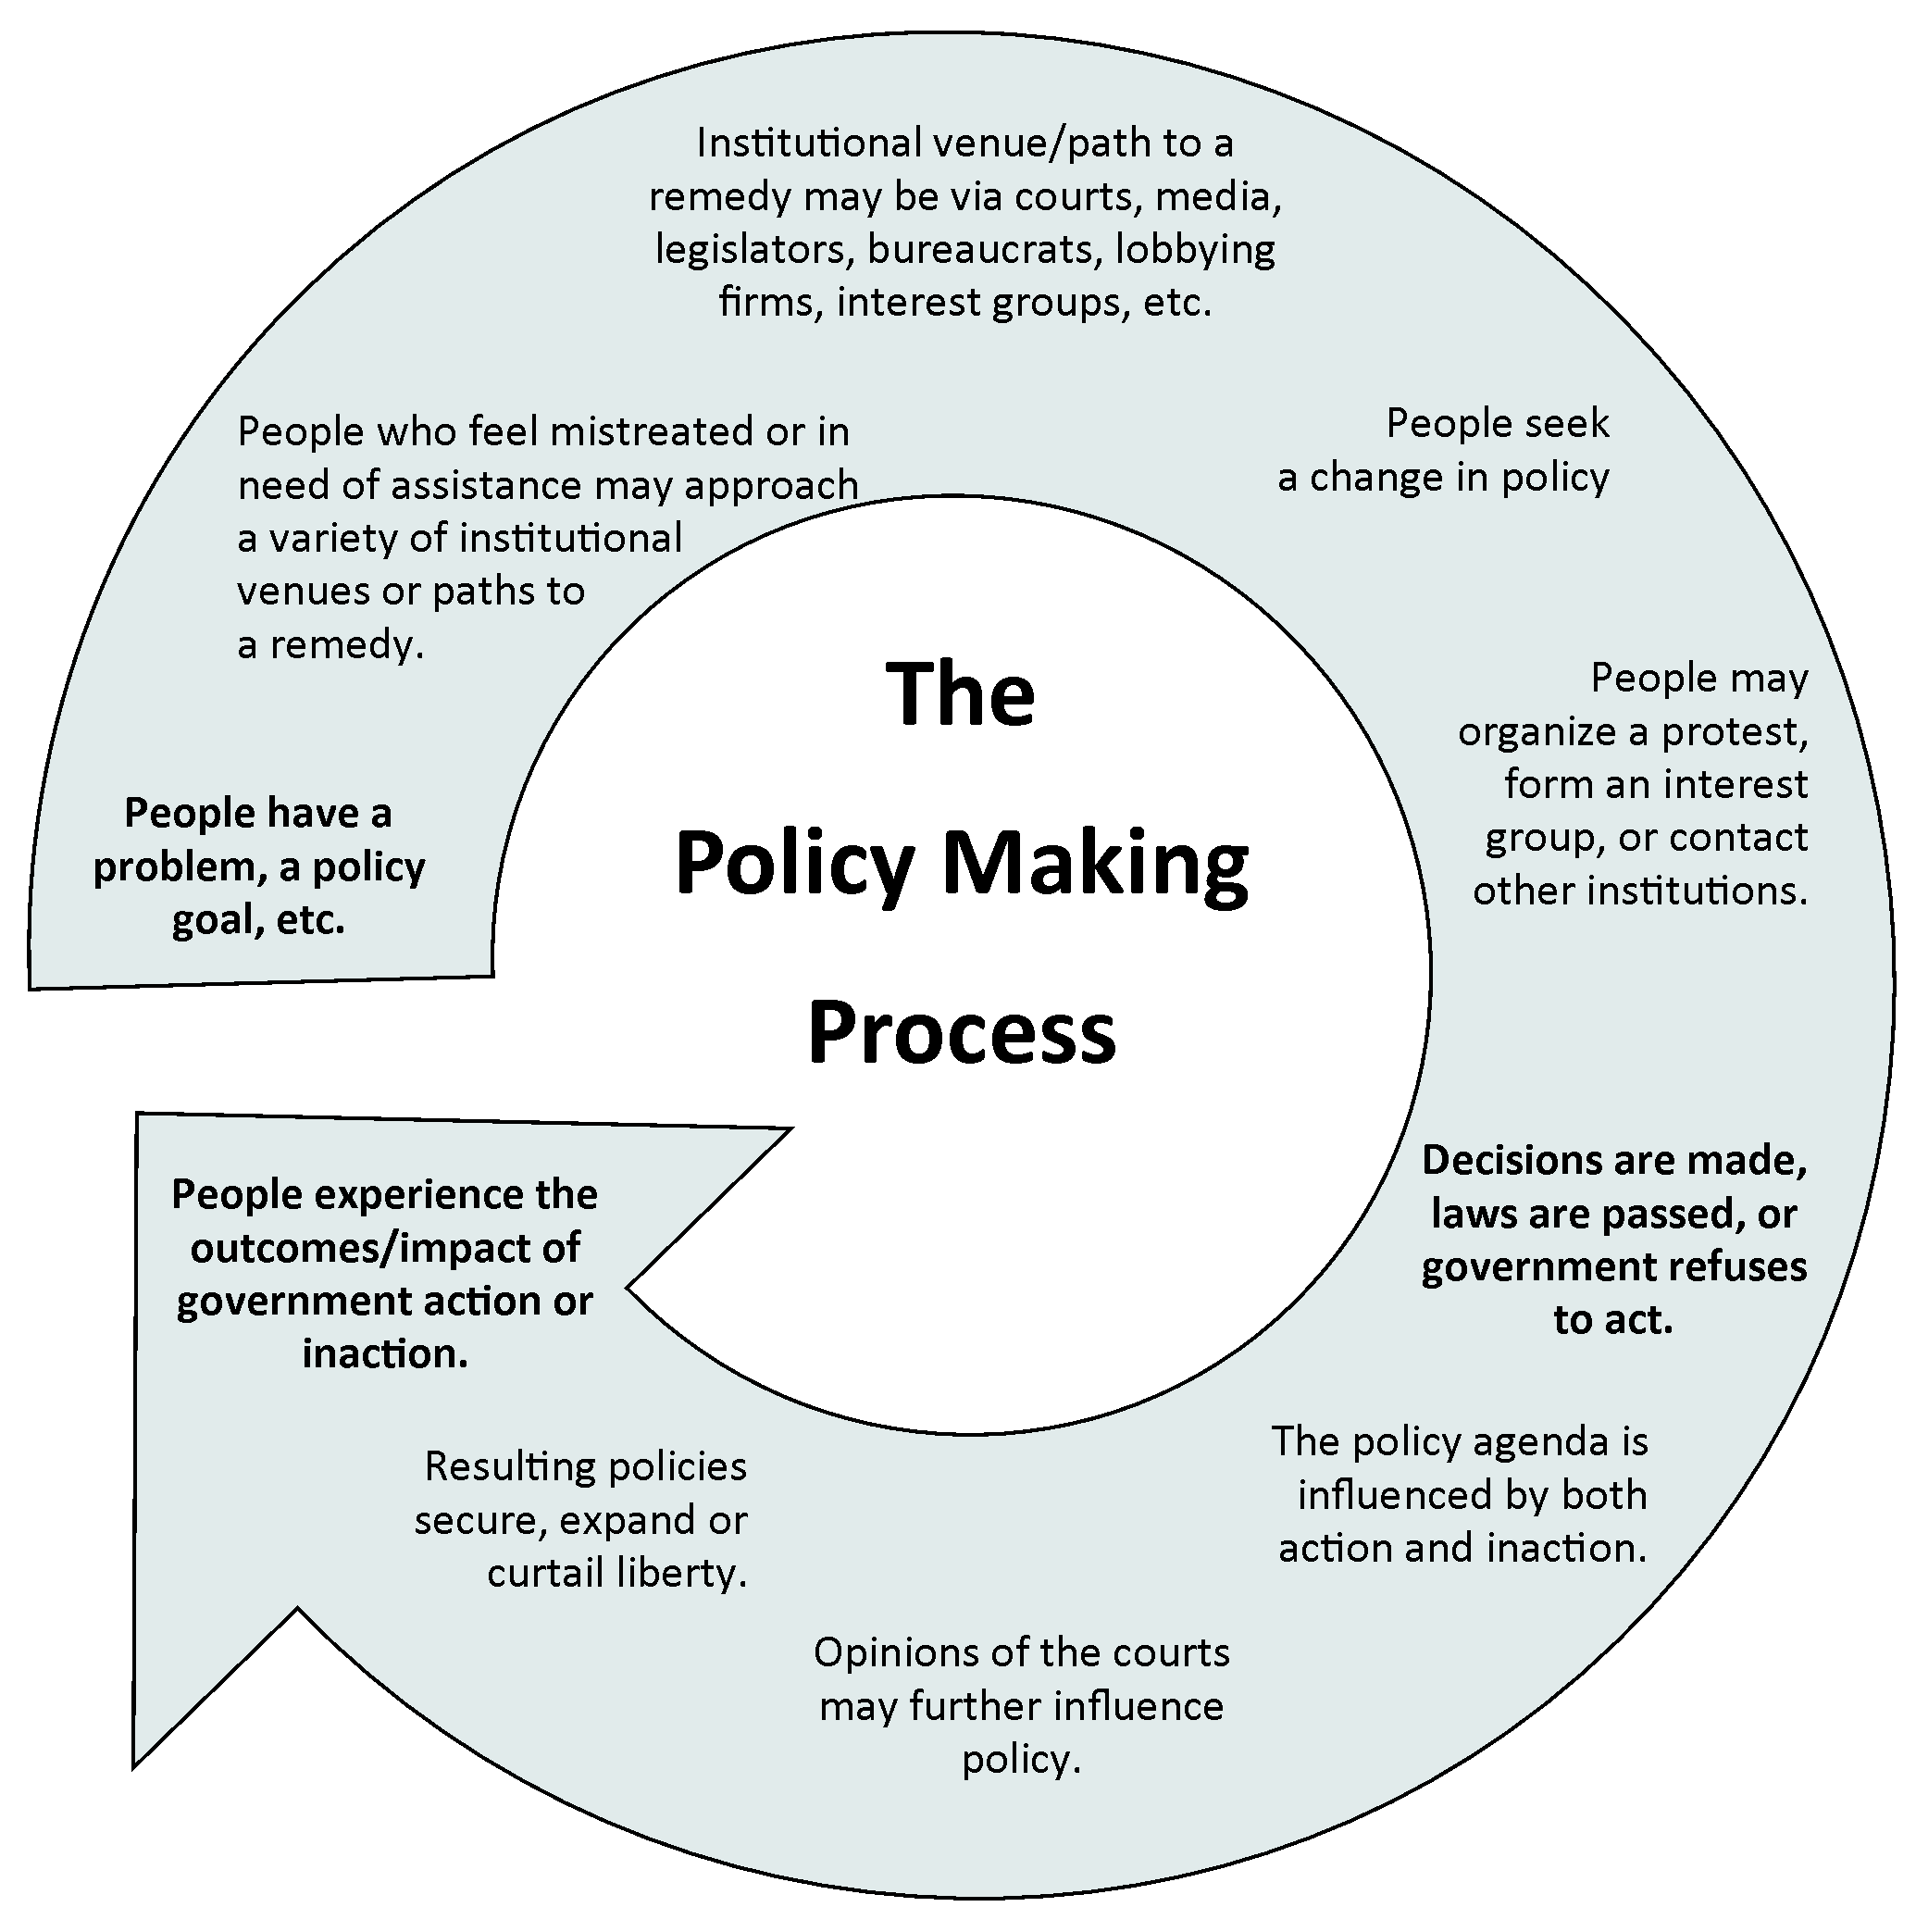 united states government civic engagement in a representative  circular chart illustrating the policy making process from people with a  problem to people experiencing an